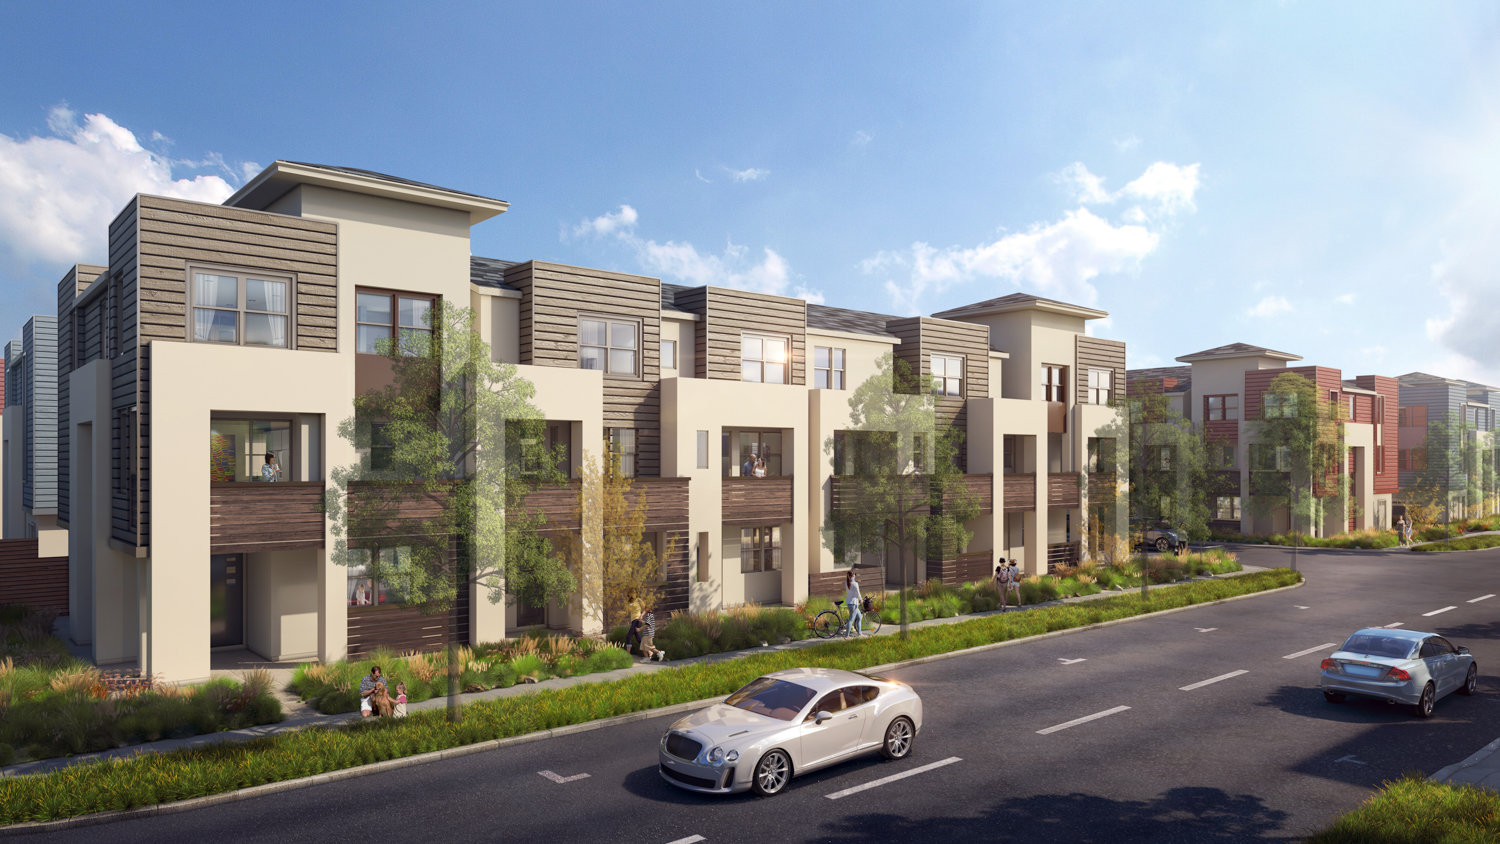 City Village new towns looking over the street, rendering courtesy Summerhill Homes